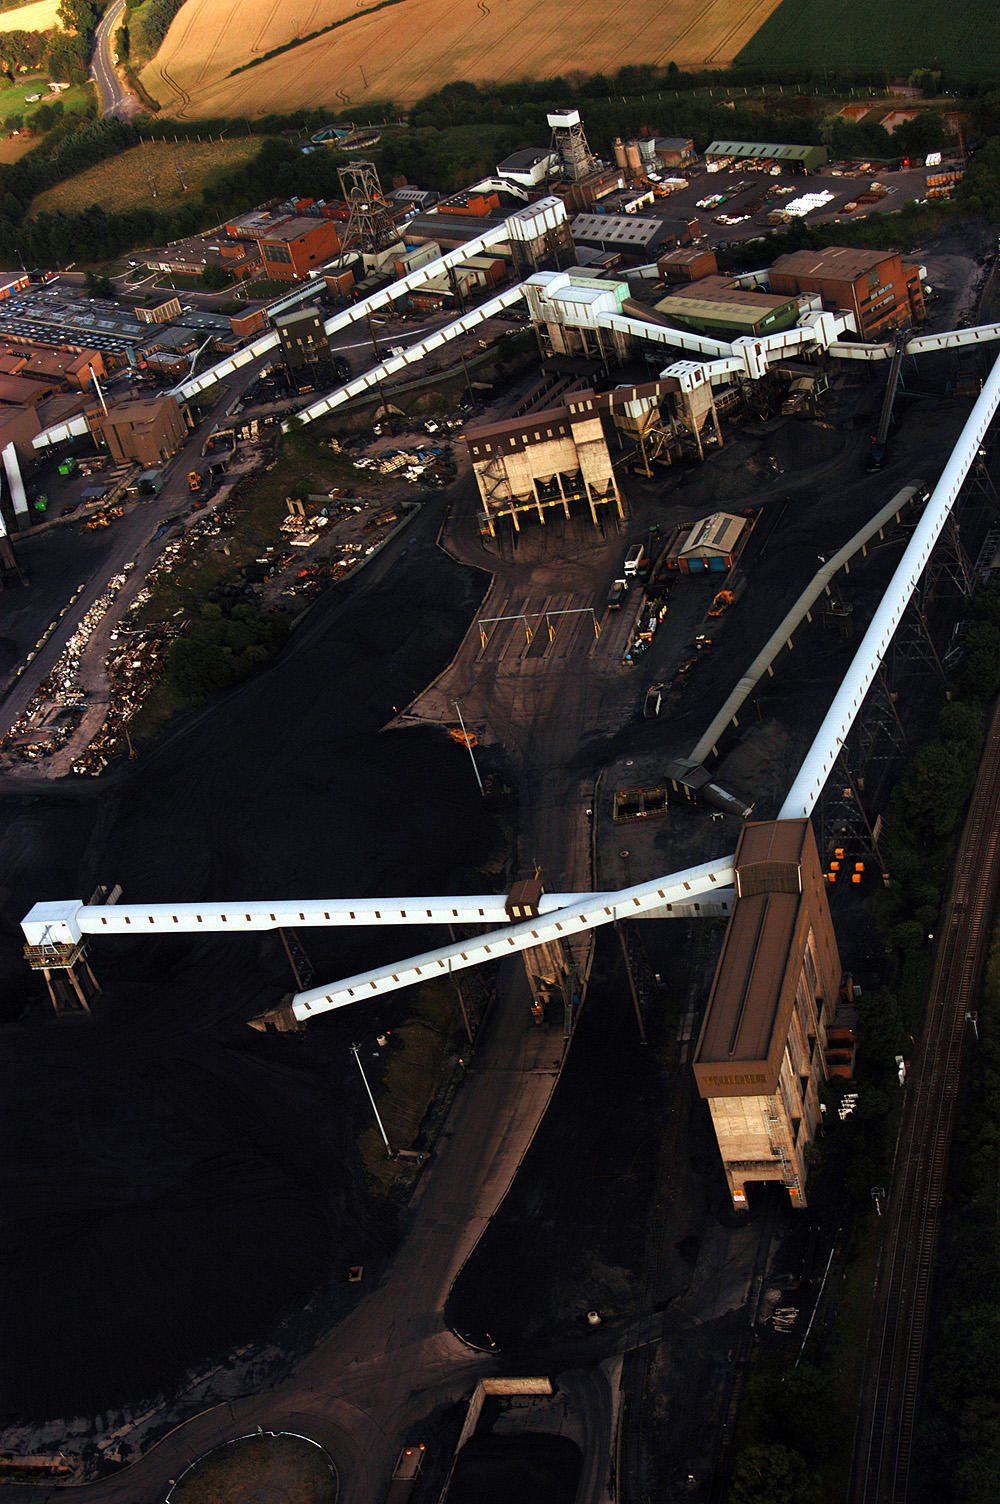 aerial photograph - industrial by dustfactory on DeviantArt